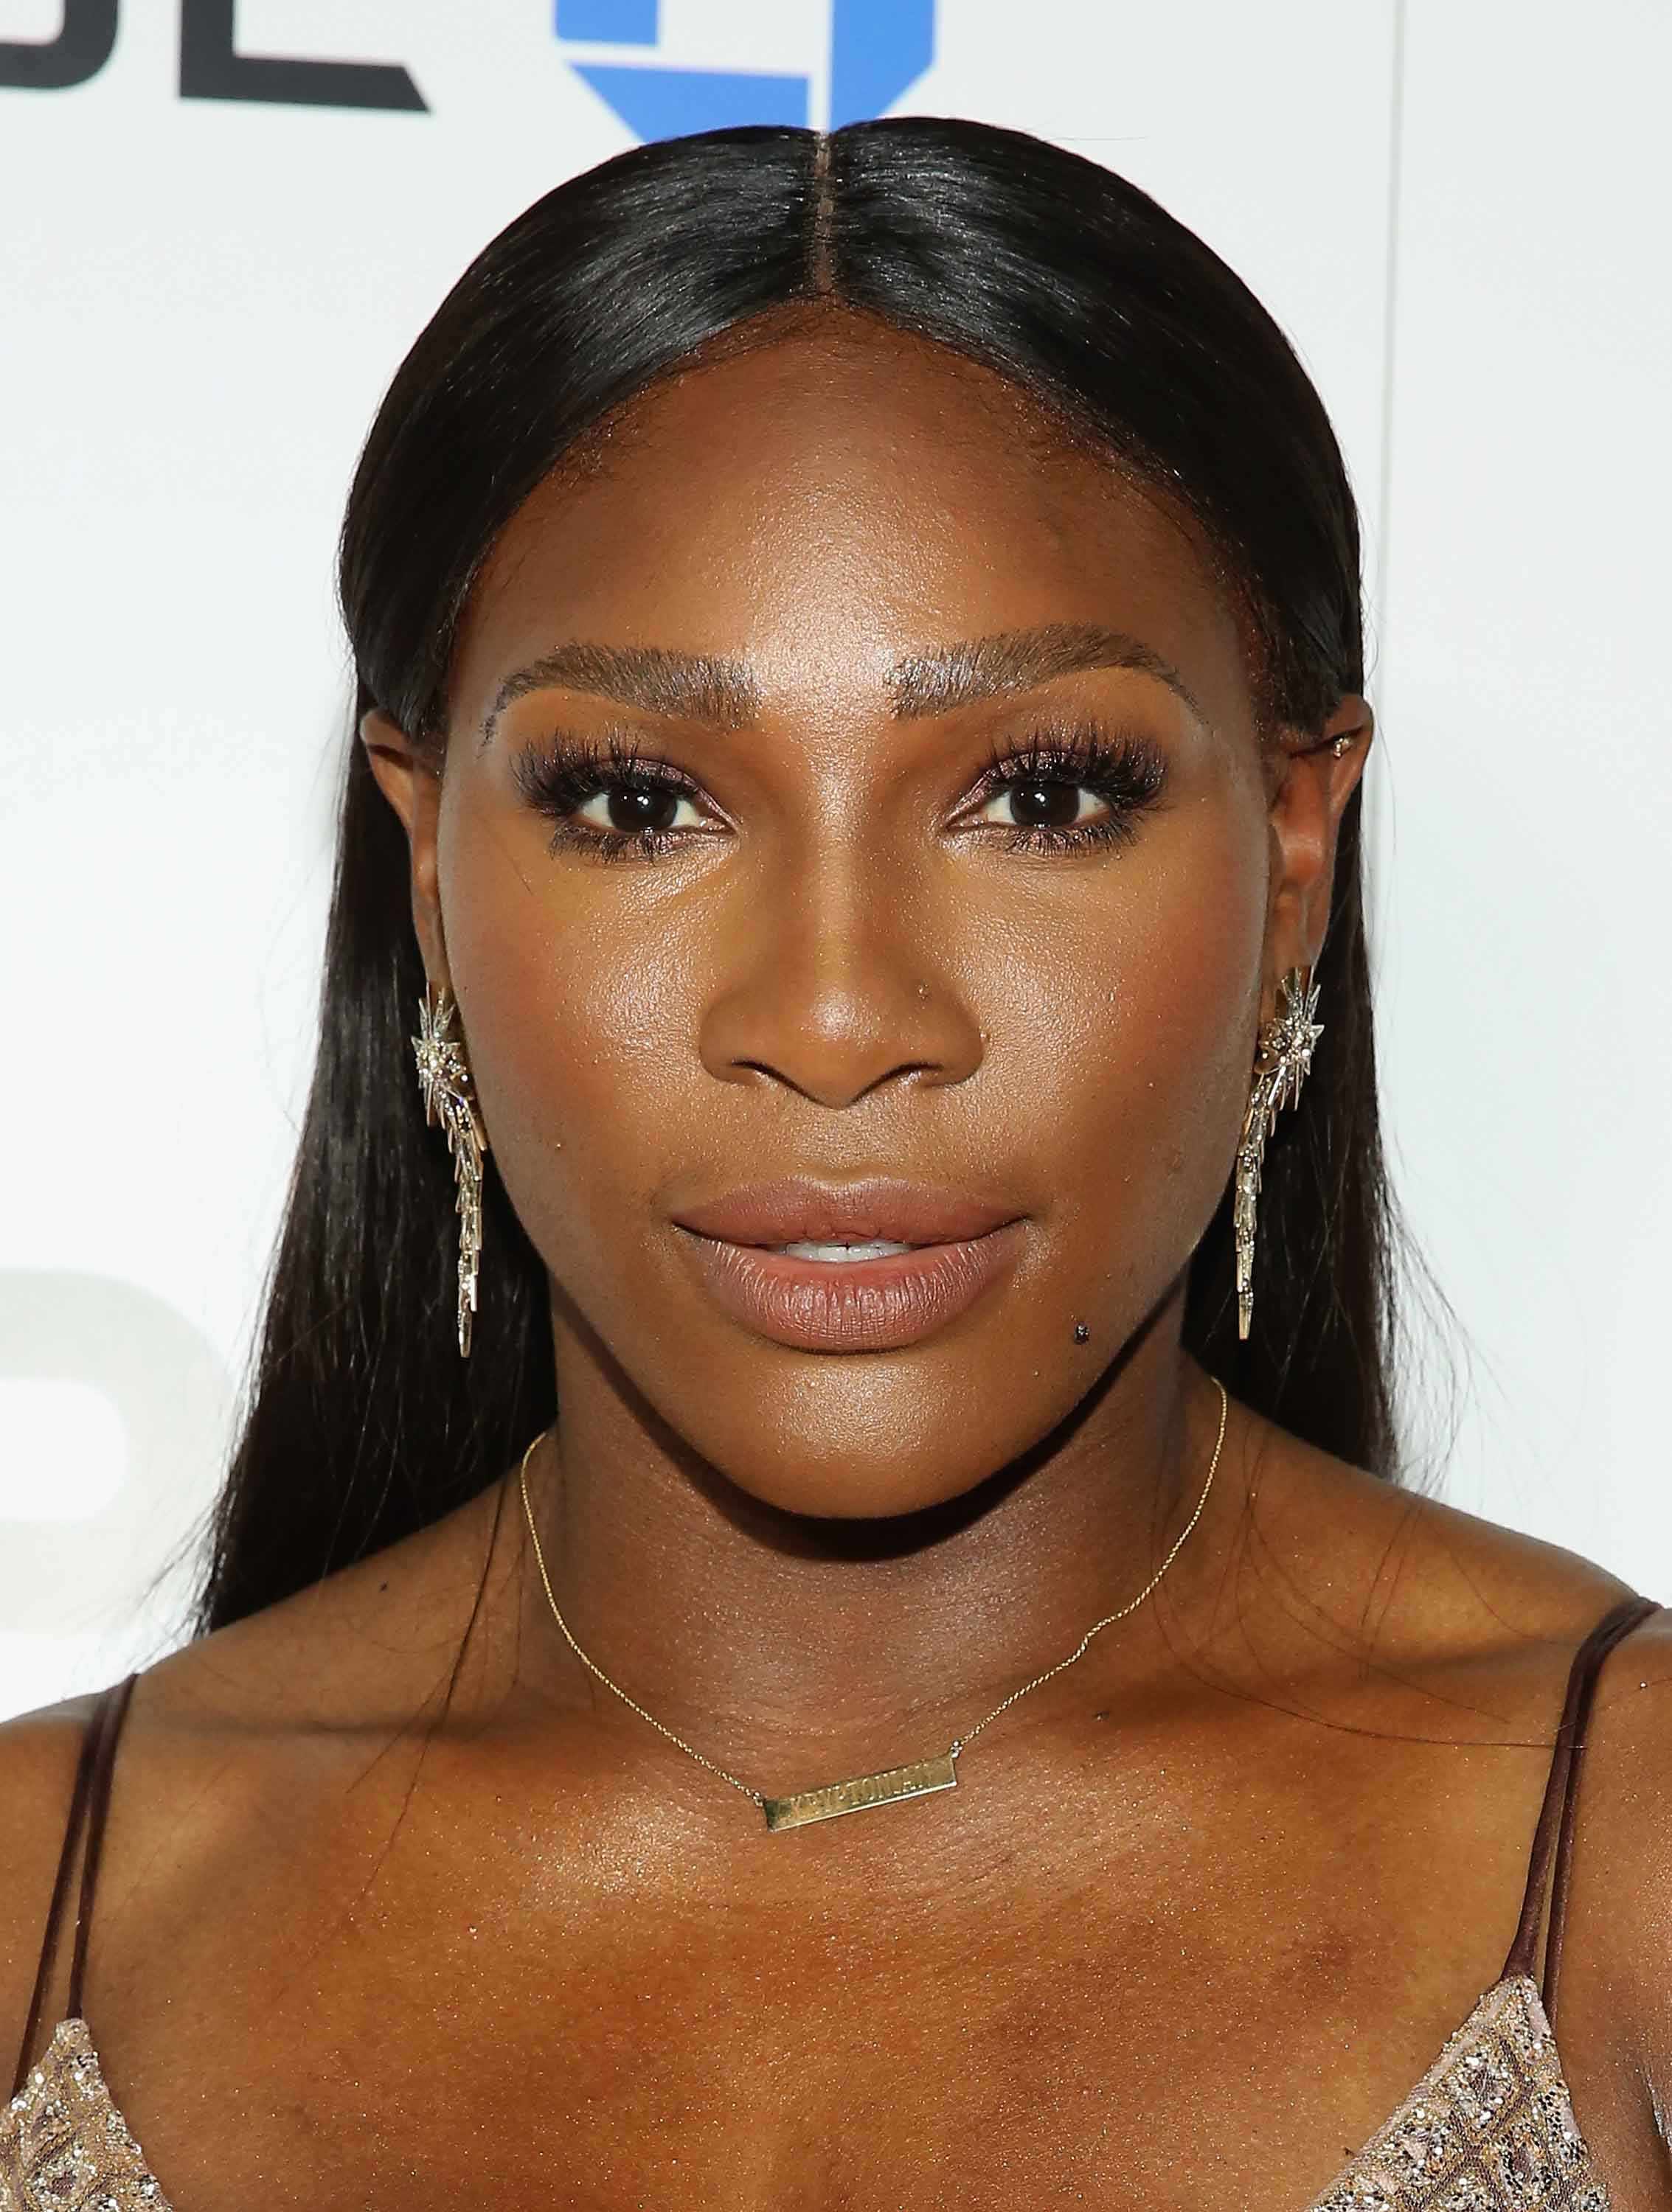 Hairstyles for athletes serena williams tennis